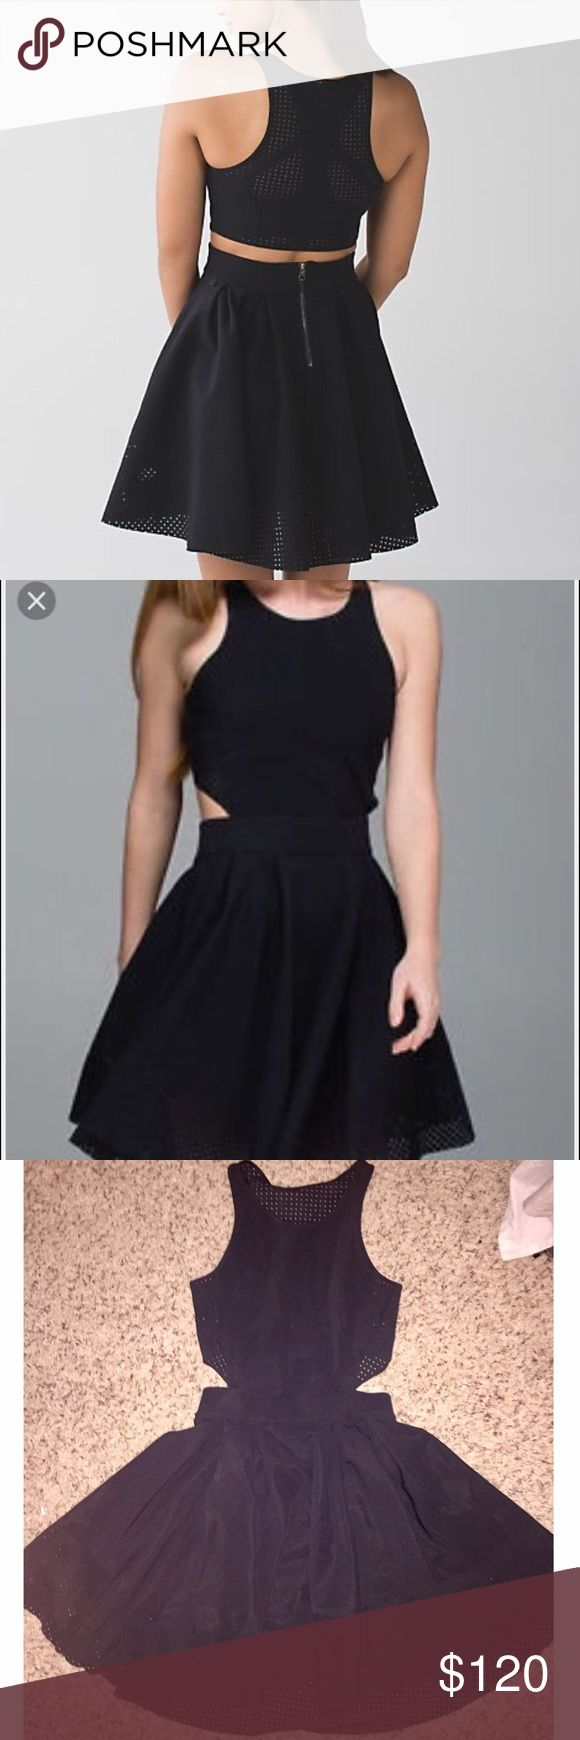 "✨LIKE NEW Lululemon ""The Away"" Dress (10/L/30.5"") This super cute lululemon dress is in great condition! It's a black Lycra material with mesh and cut out details. Seriously so cute and comfortable. I measured the waist and it's 30.5 inches, which is a women's size 10/Large, according to lululemon's size chart. Originally $198. lululemon athletica Dresses Mini"